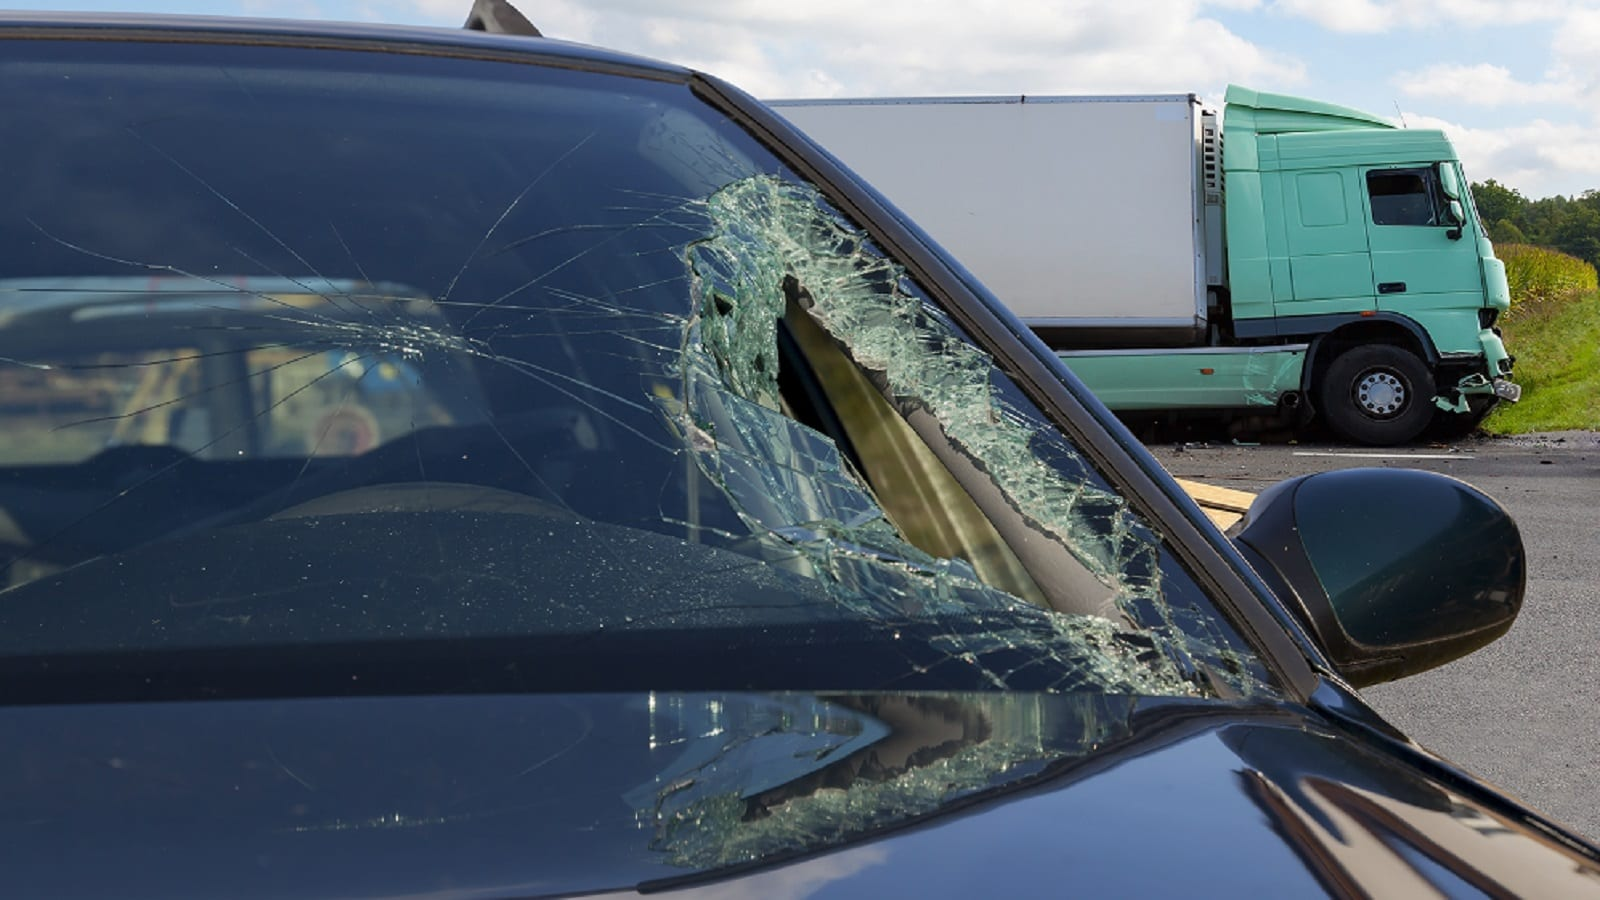 View of truck in an accident with car, broken glass